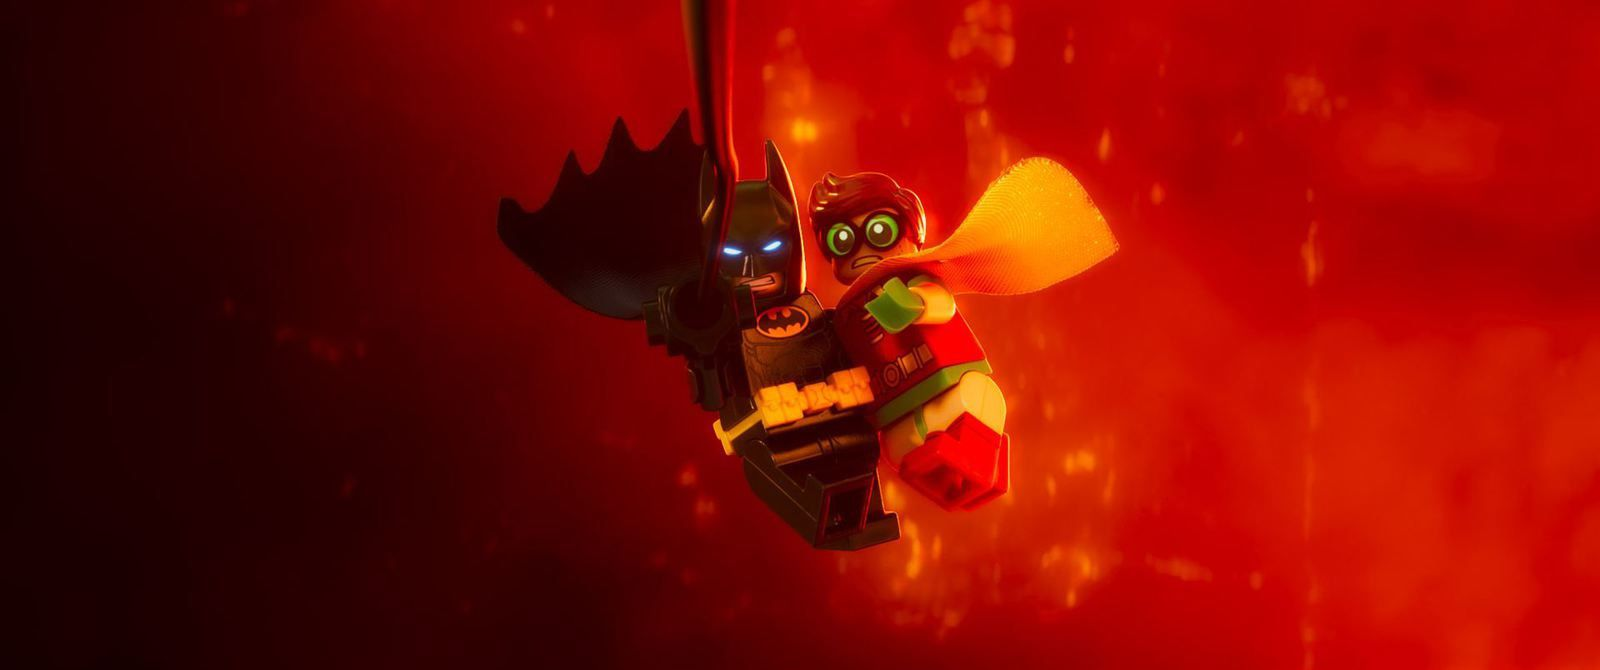 [critique] Lego Batman : Le Film